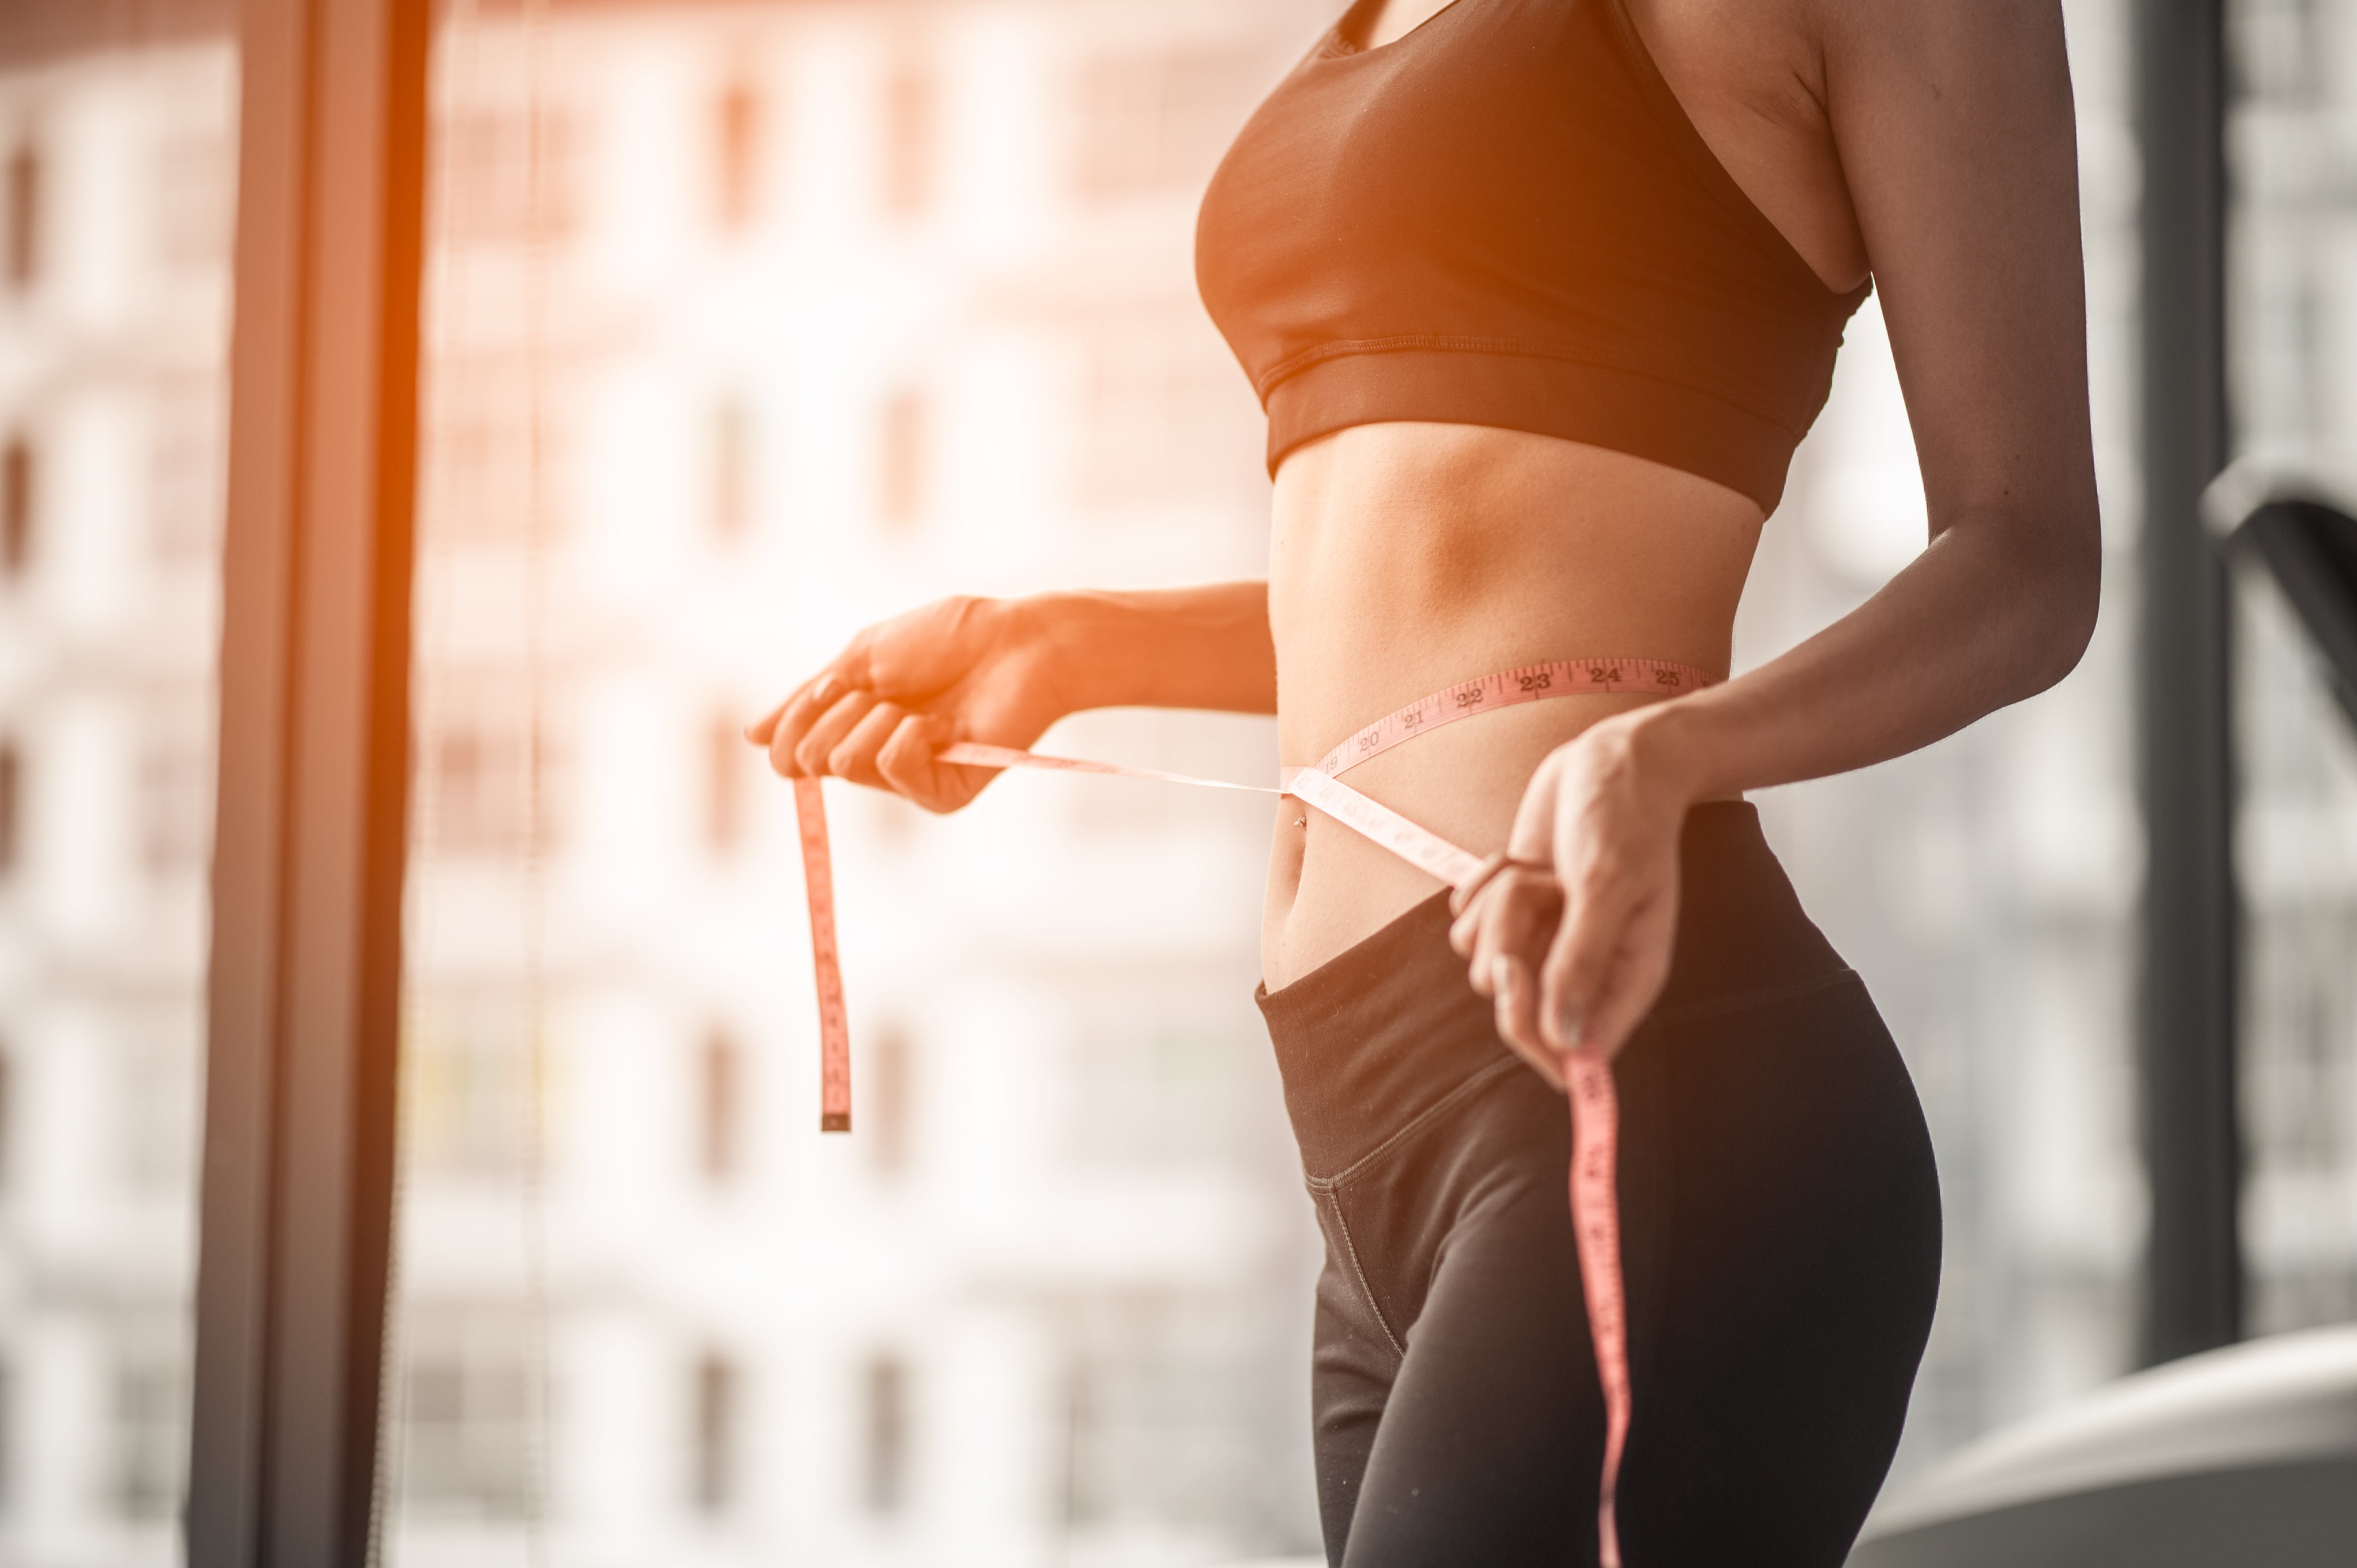 lose weight this holiday season with liposuction